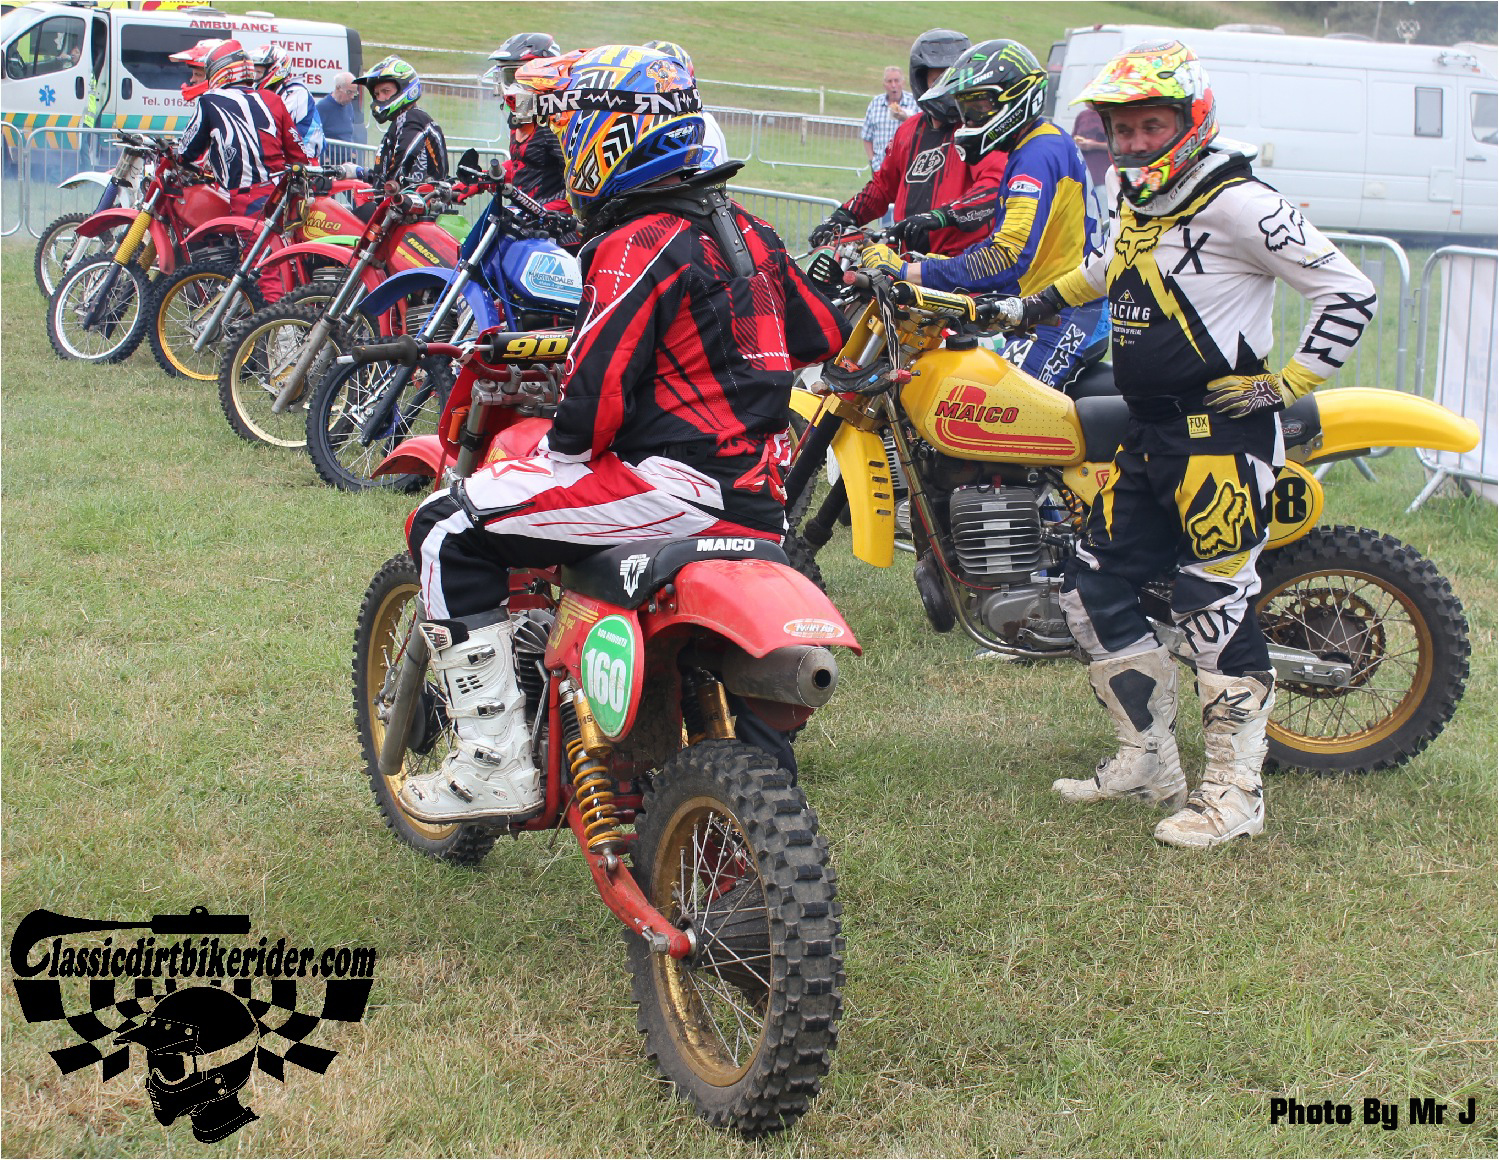 king of the castle 2015 photos Farleigh Castle twinshock motocross classicdirtbikerider.com 3